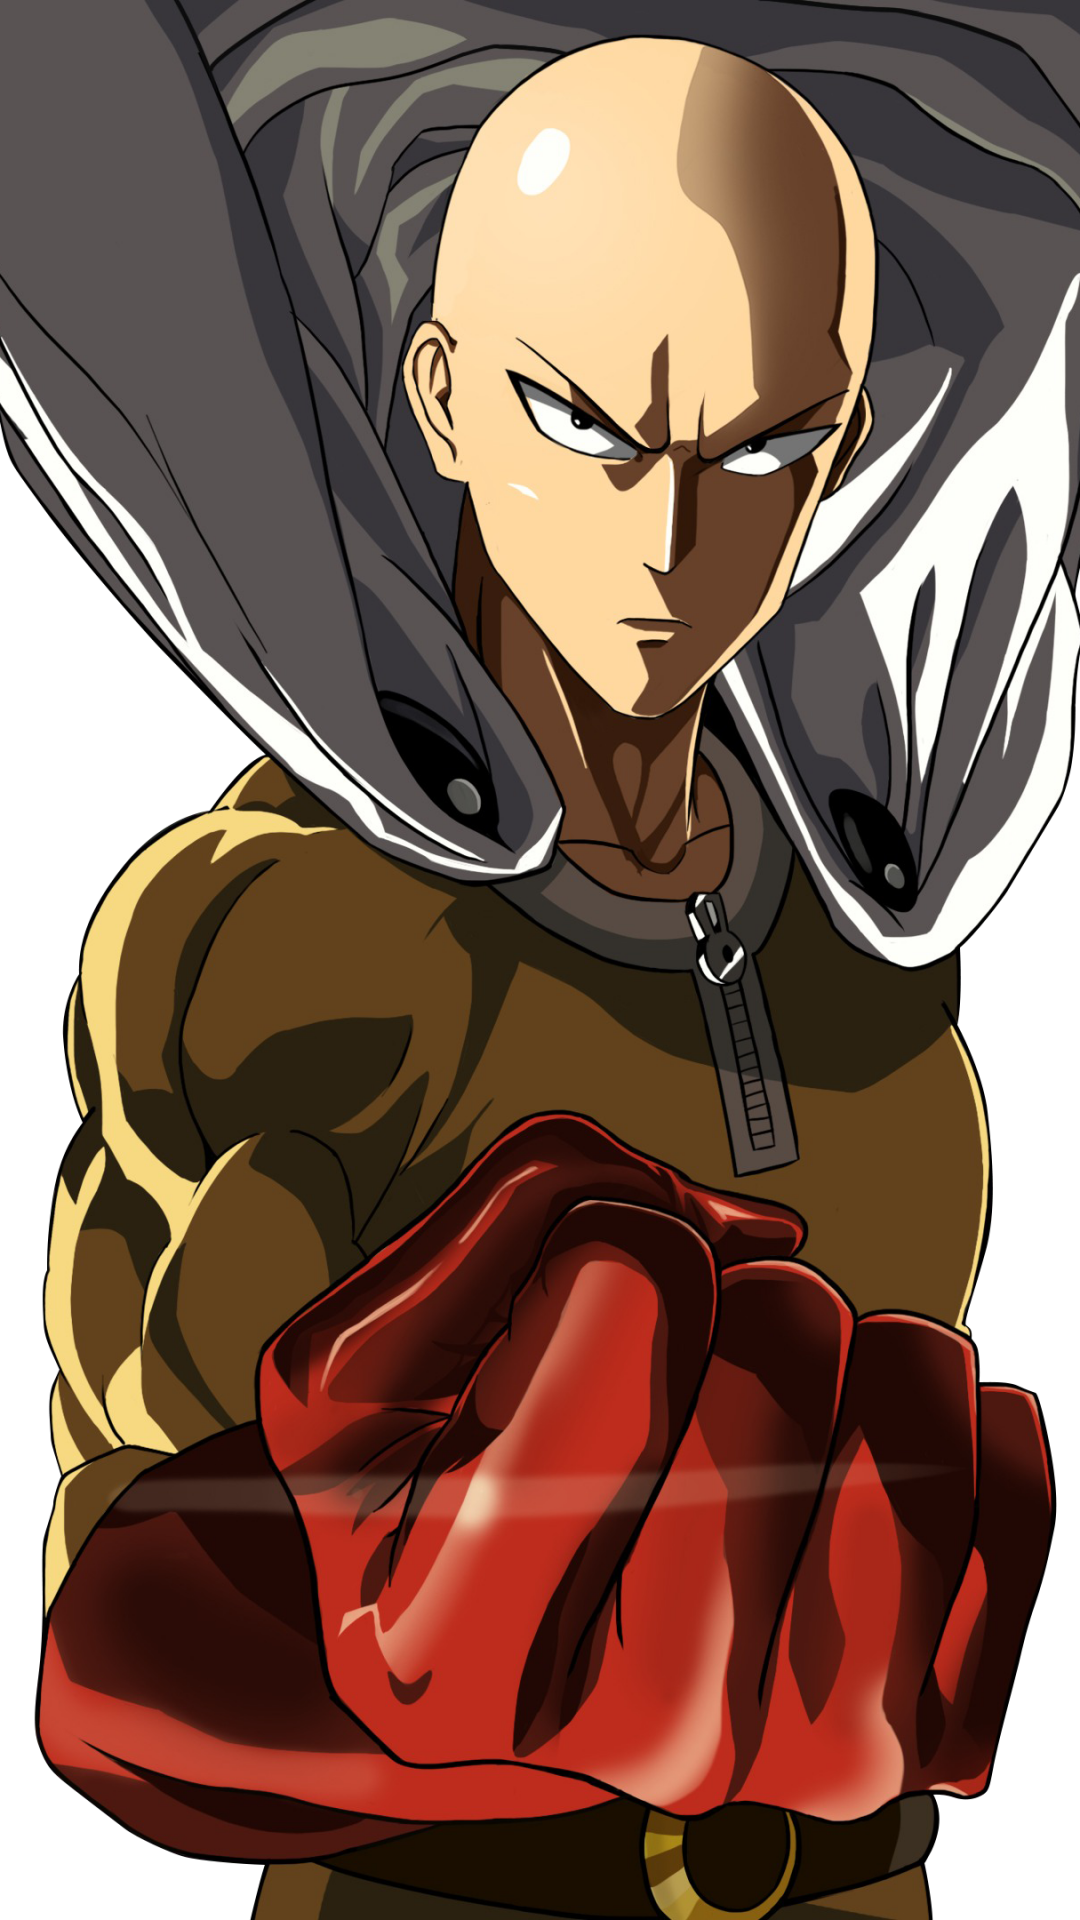 Hd Anime One Punch Man Mobile Wallpape 1061641 Png Images Pngio